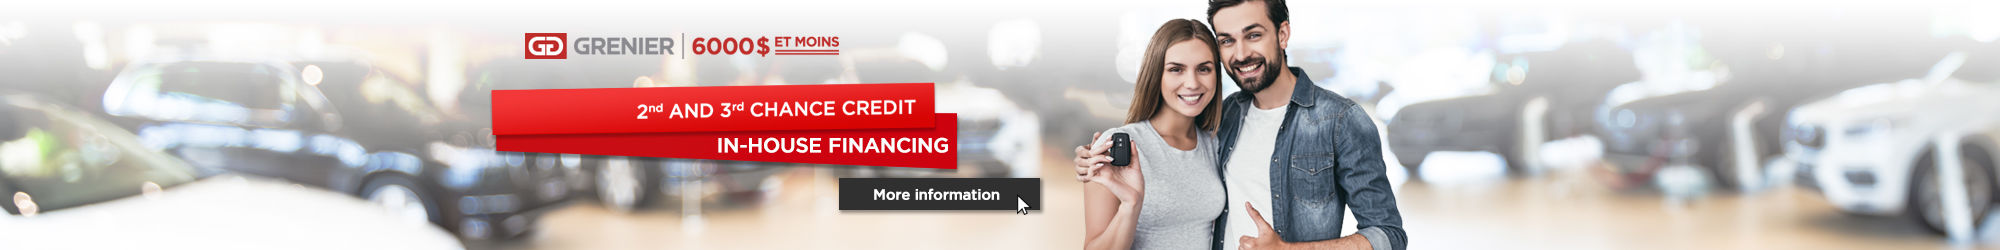 2nd and 3rd credit chance / In-house financing